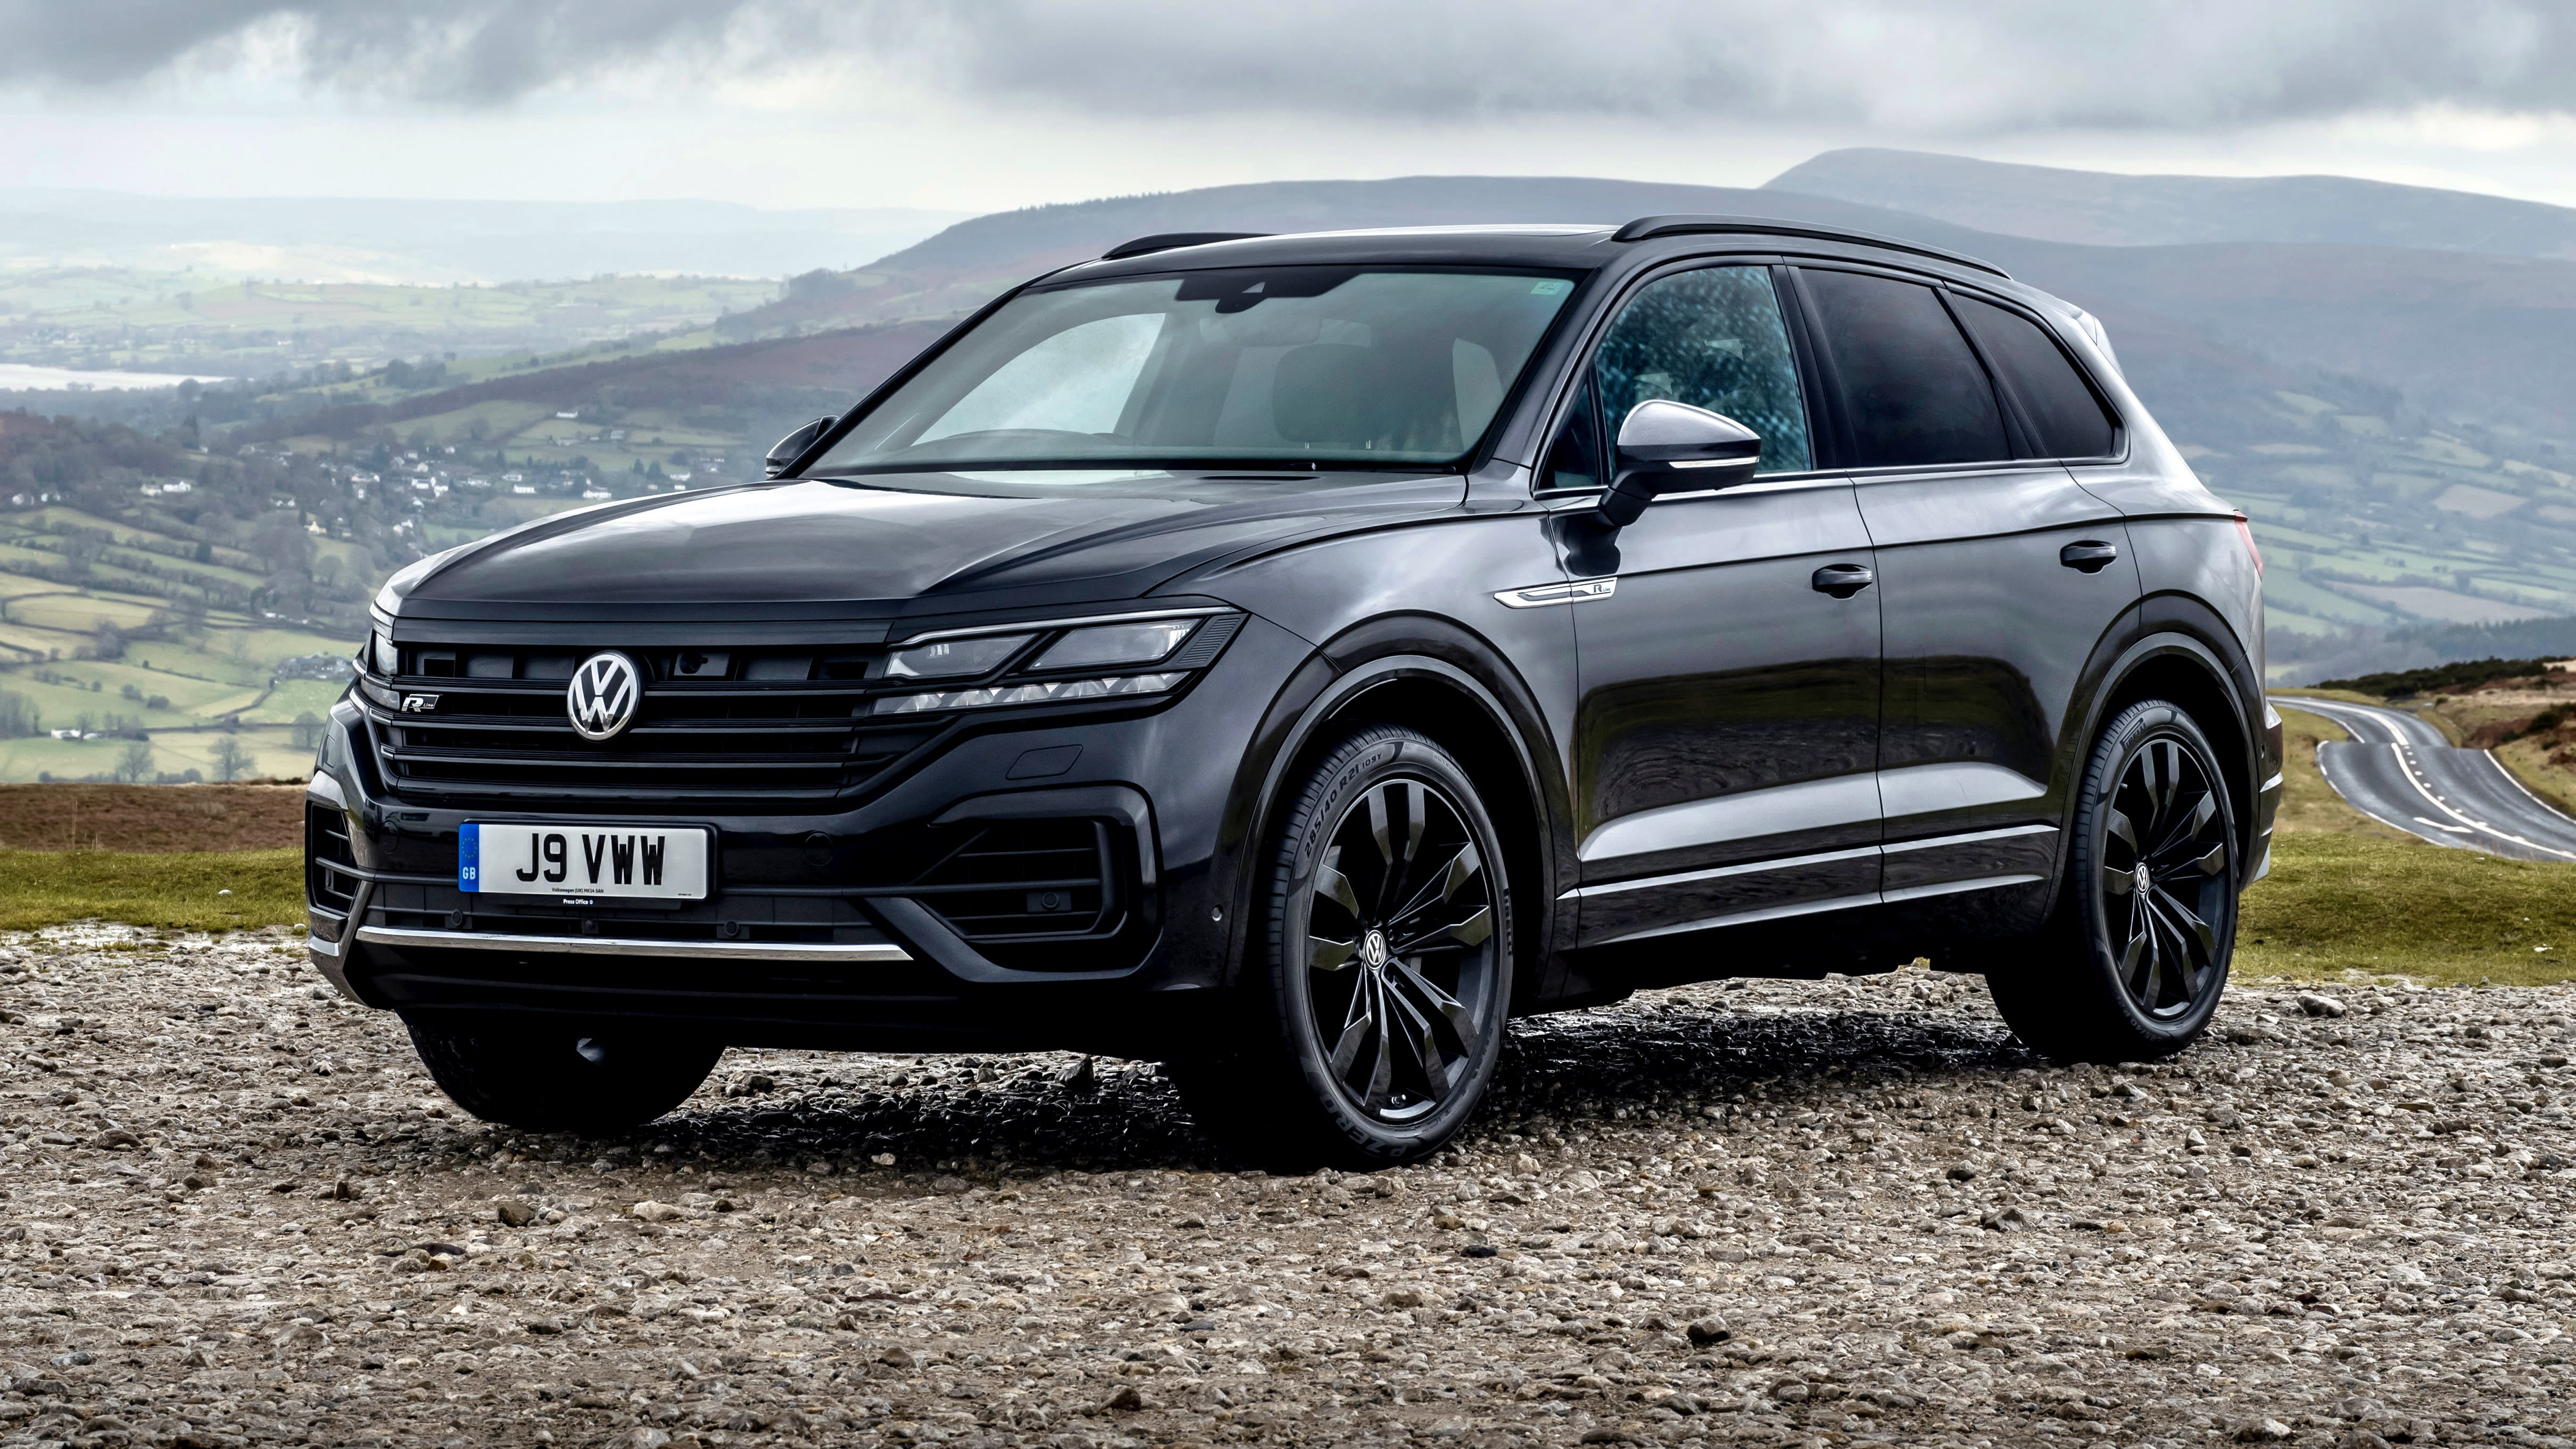 2021 Volkswagen Touareg Wolfsburg Price And Specs Limited Edition Suvs Arrive Caradvice